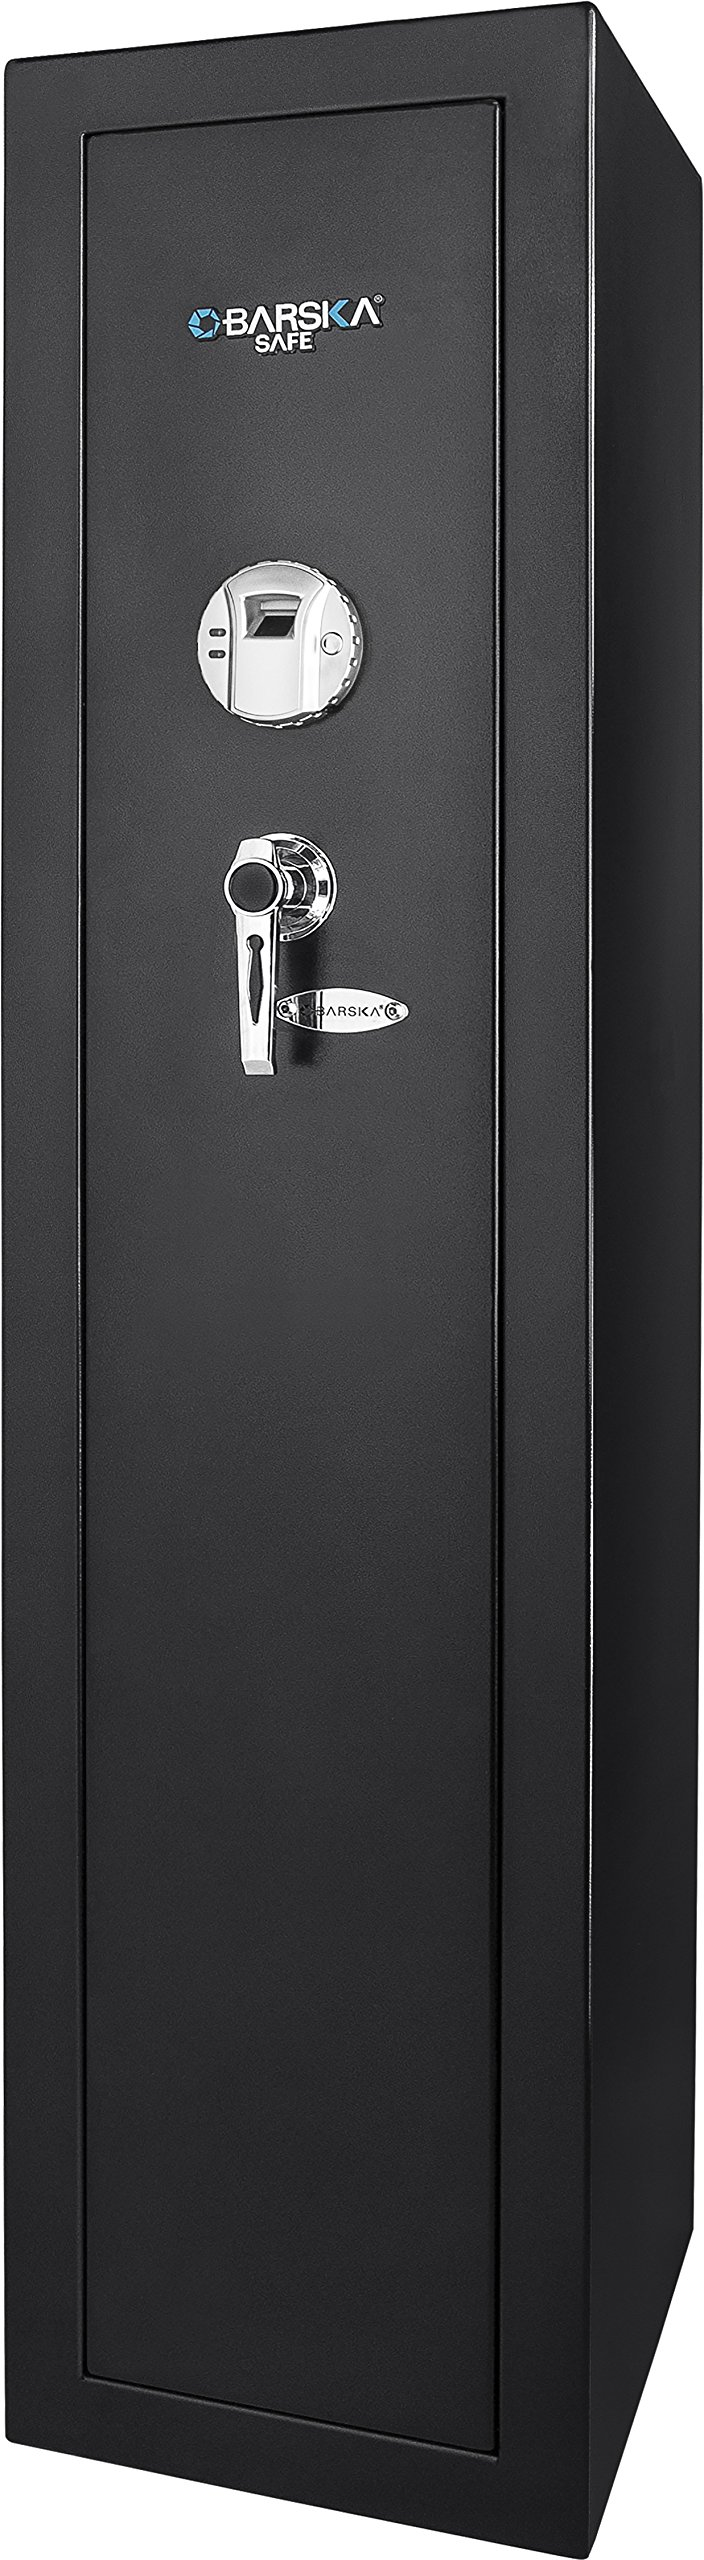 Barska Large Biometric Safe by BARSKA (Image #3)